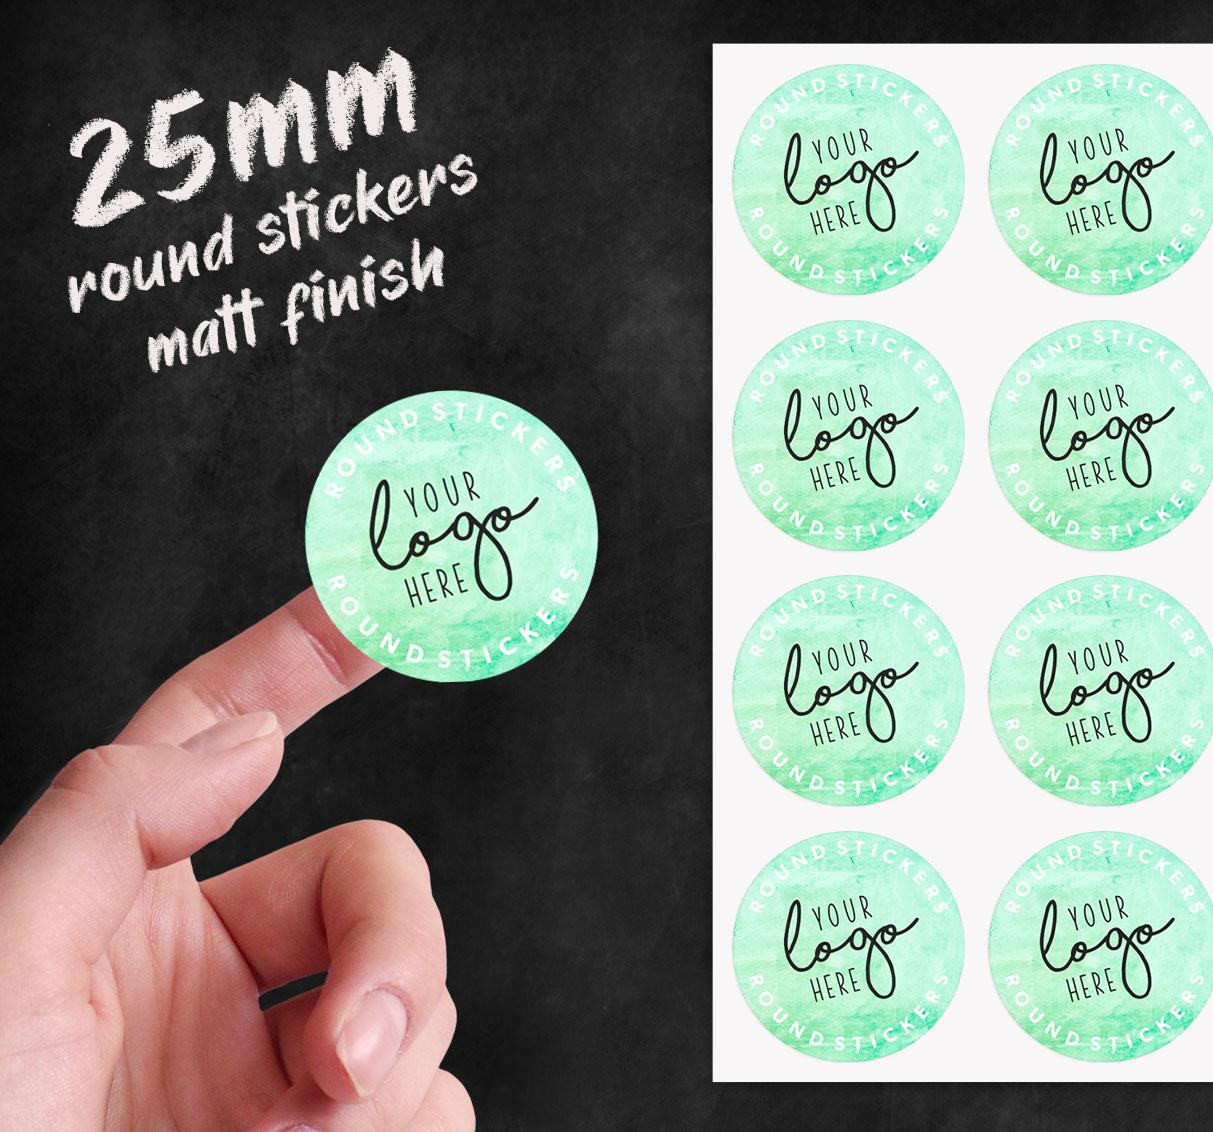 25mm round stickers